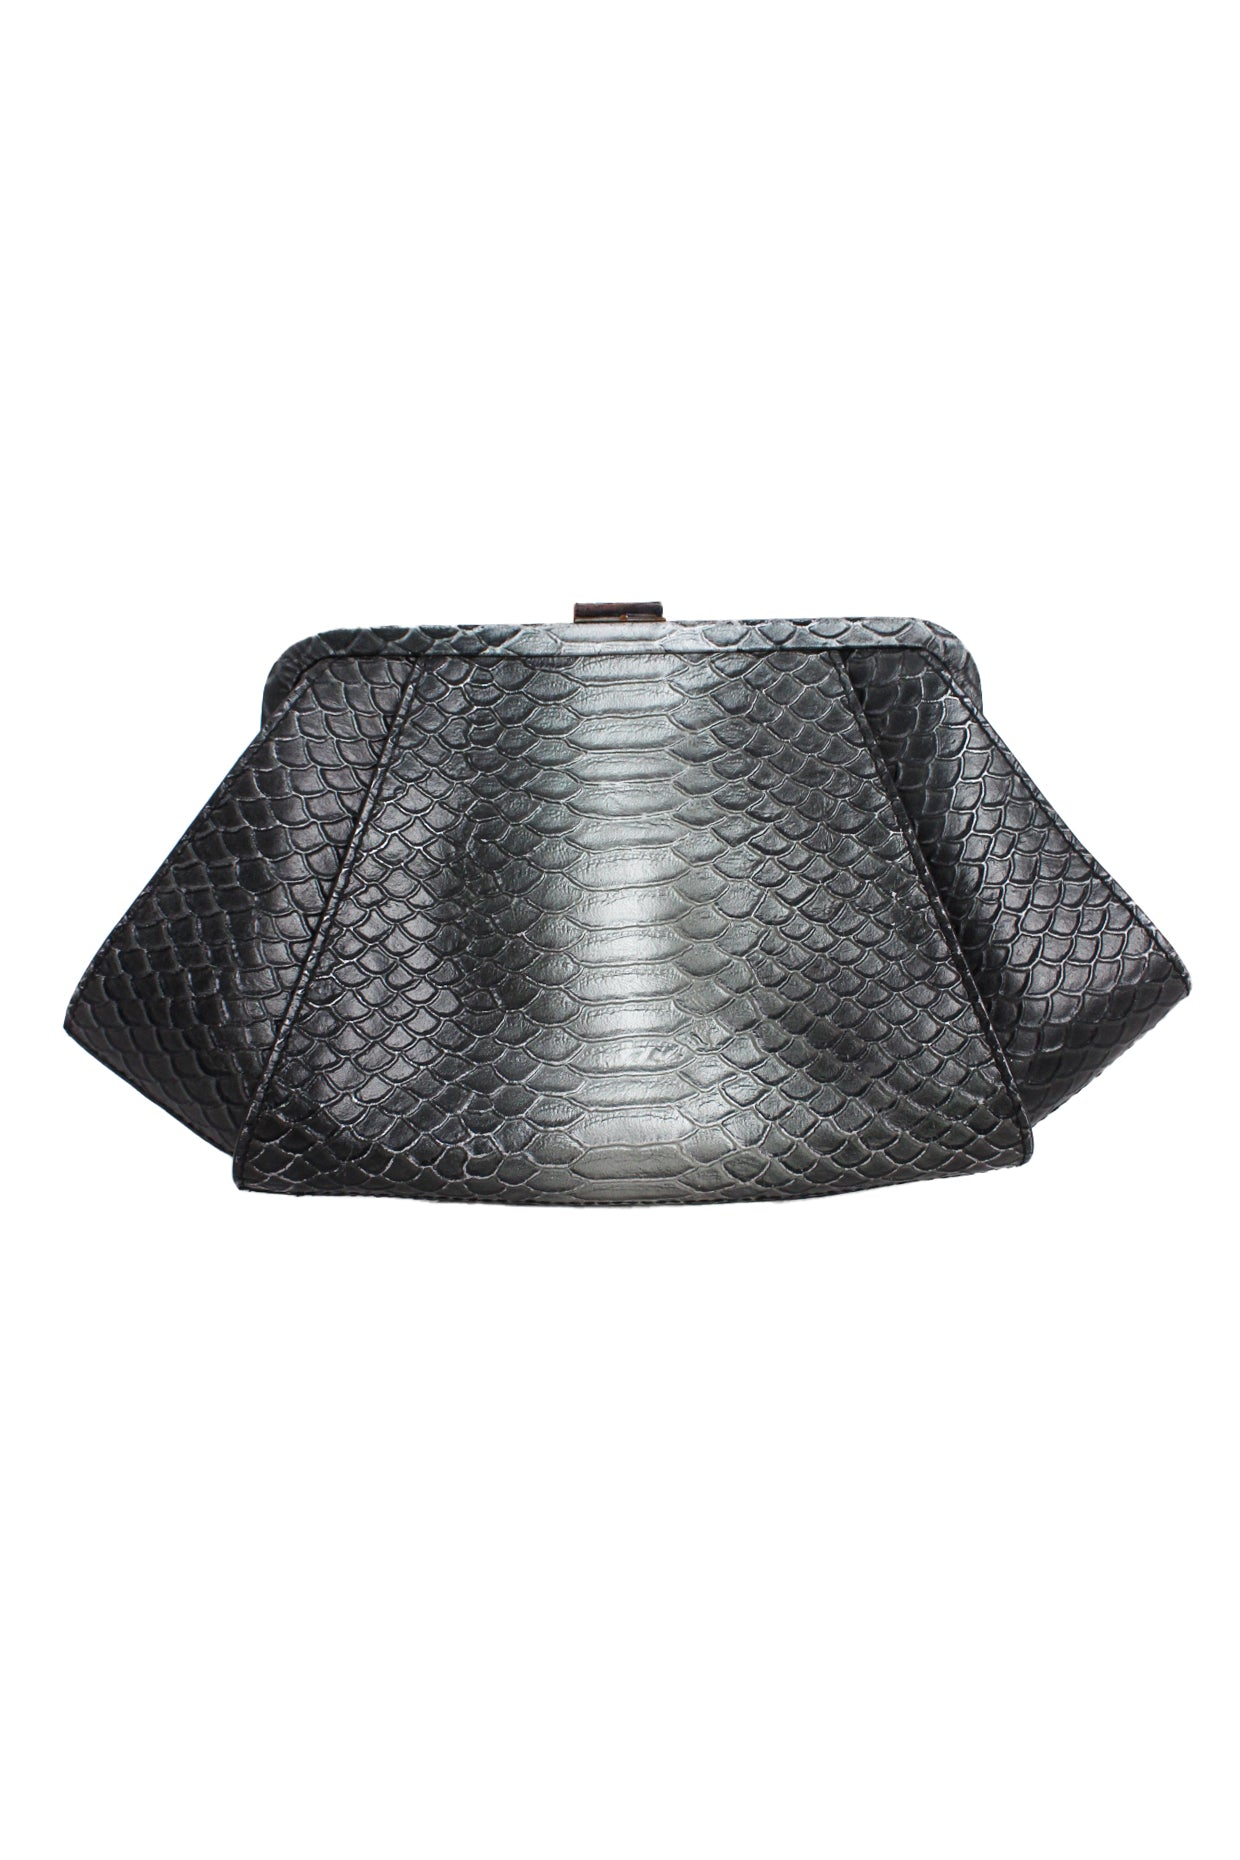 zac posen gray ombre snake embossed clutch/crossbody bag. features a concealable and removable strap.